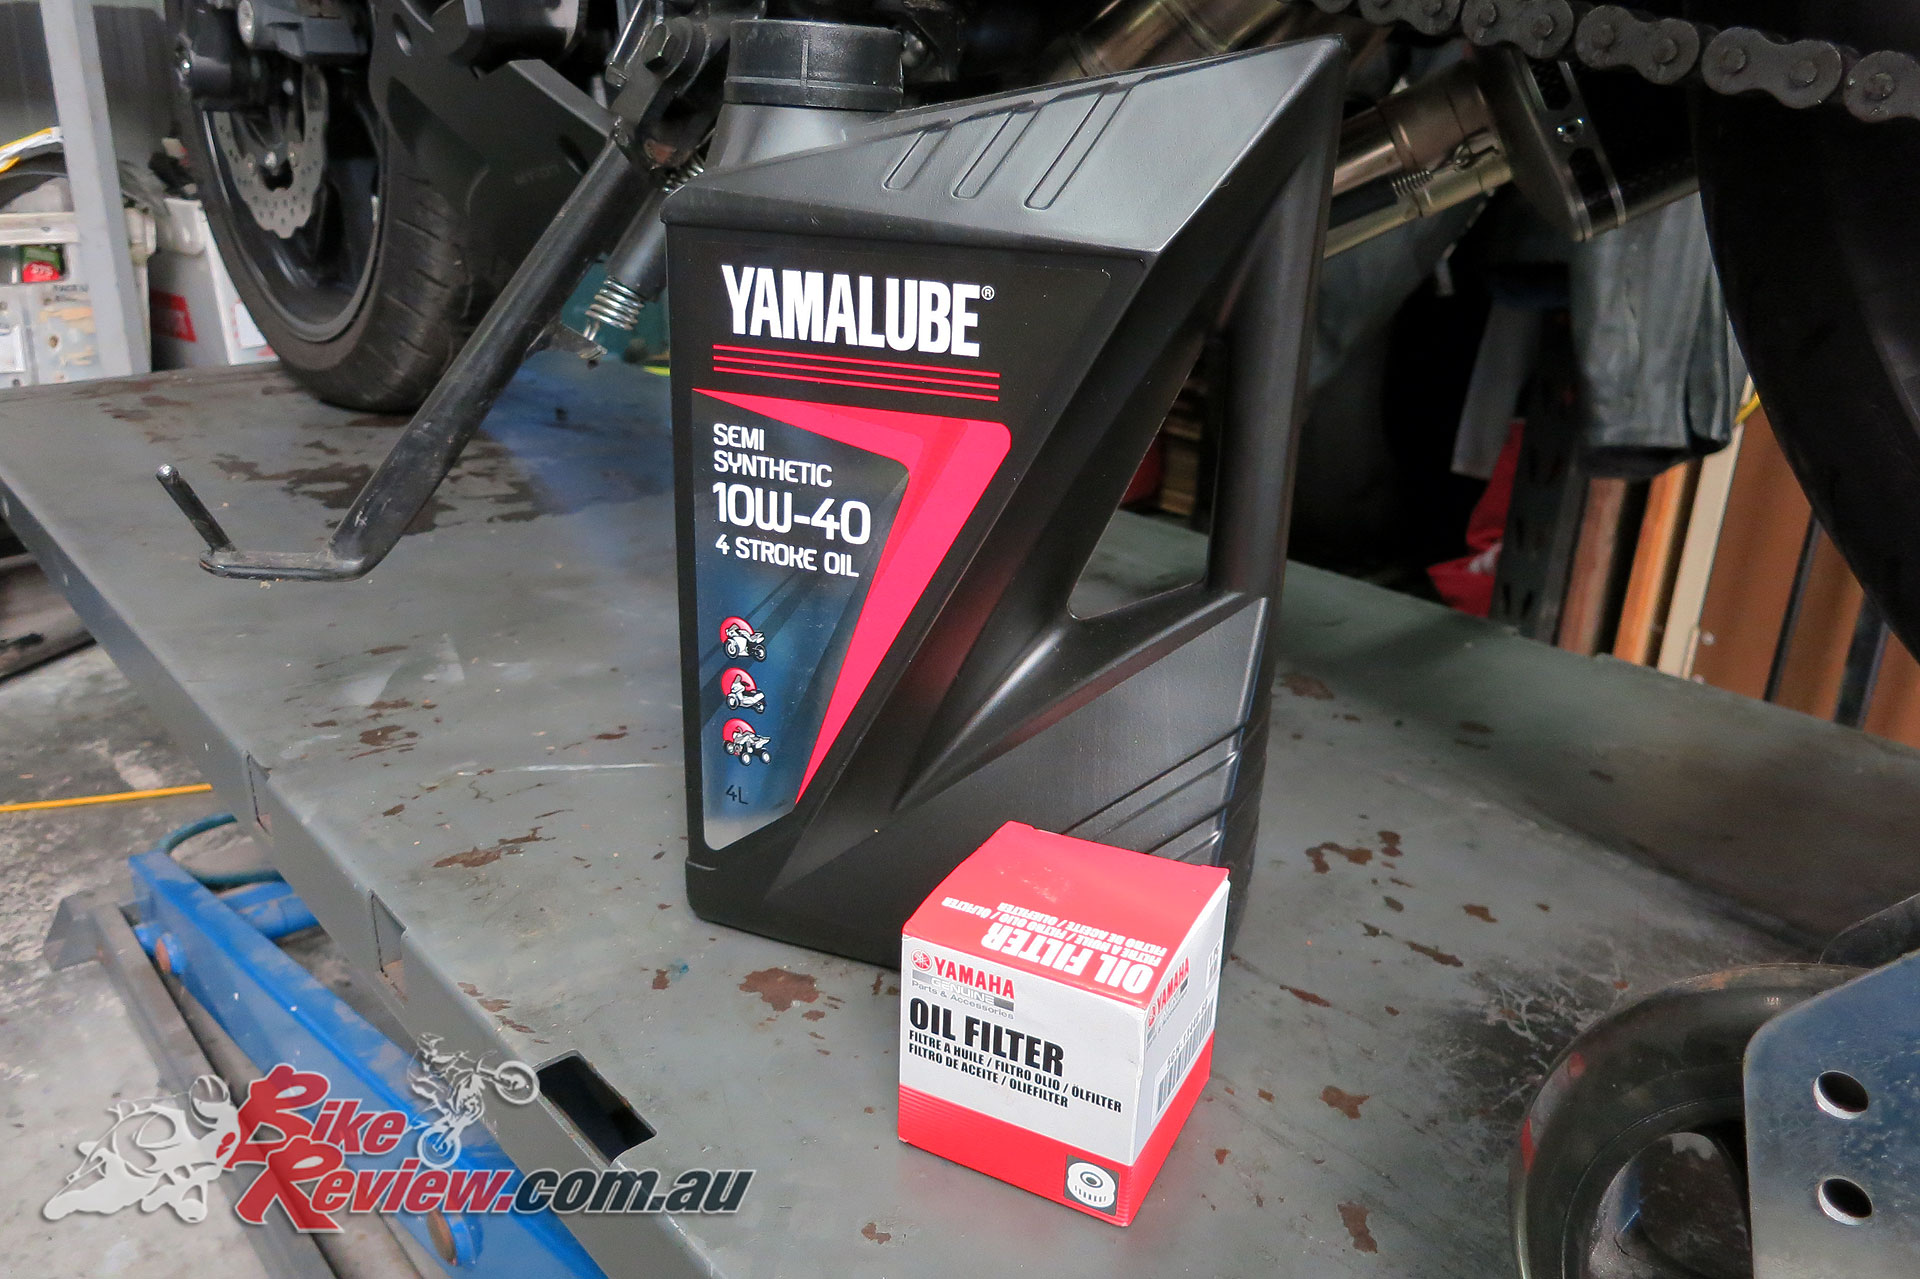 Yamaha MT-07 Tracer oil change service and maintenance